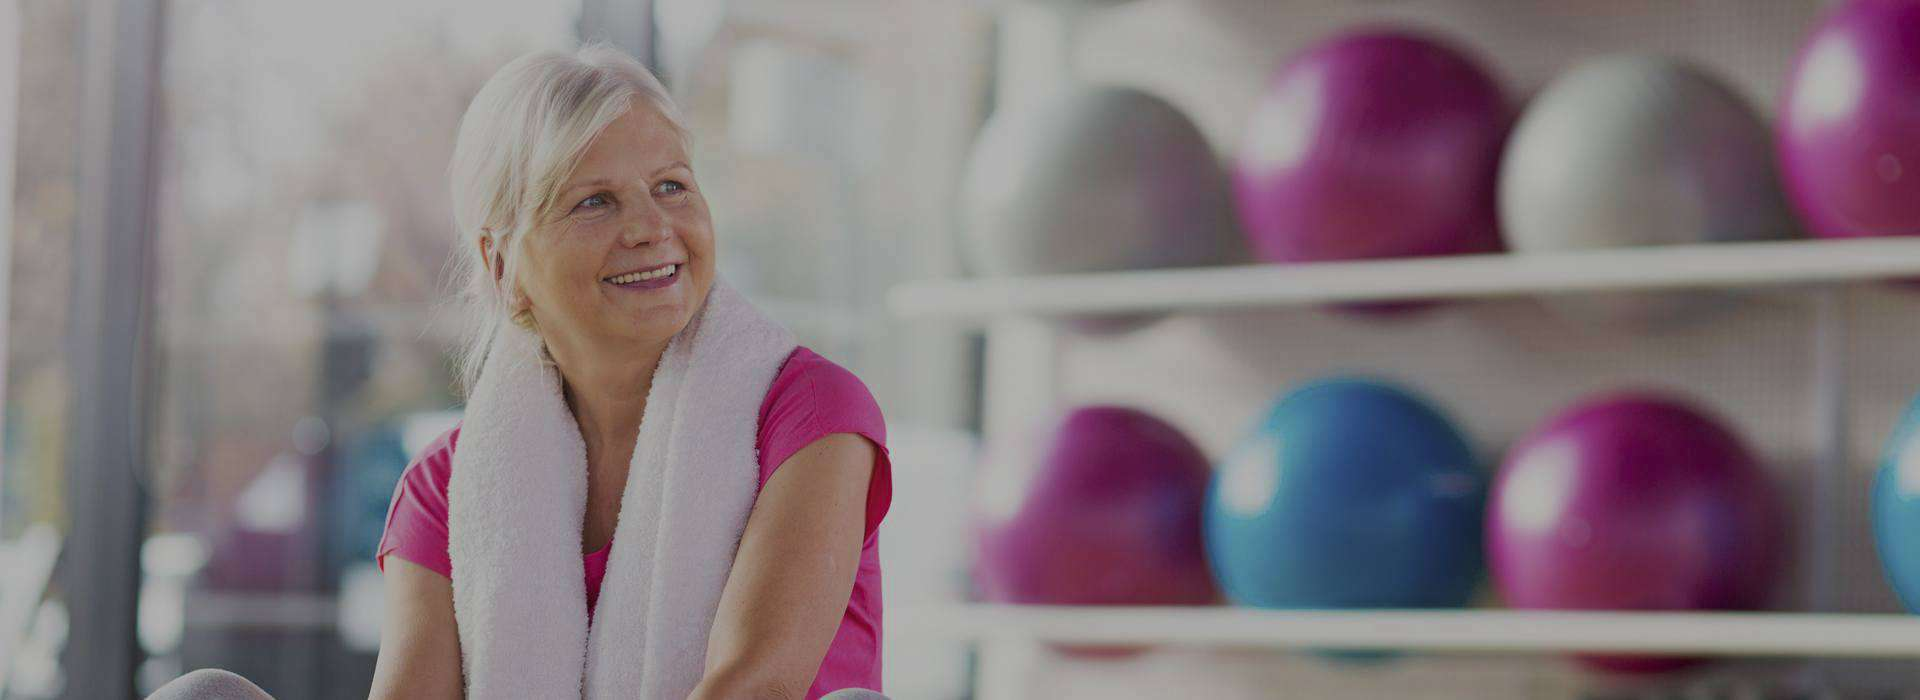 Elderly woman smiling after exercising at Green Apple Wellness Centre